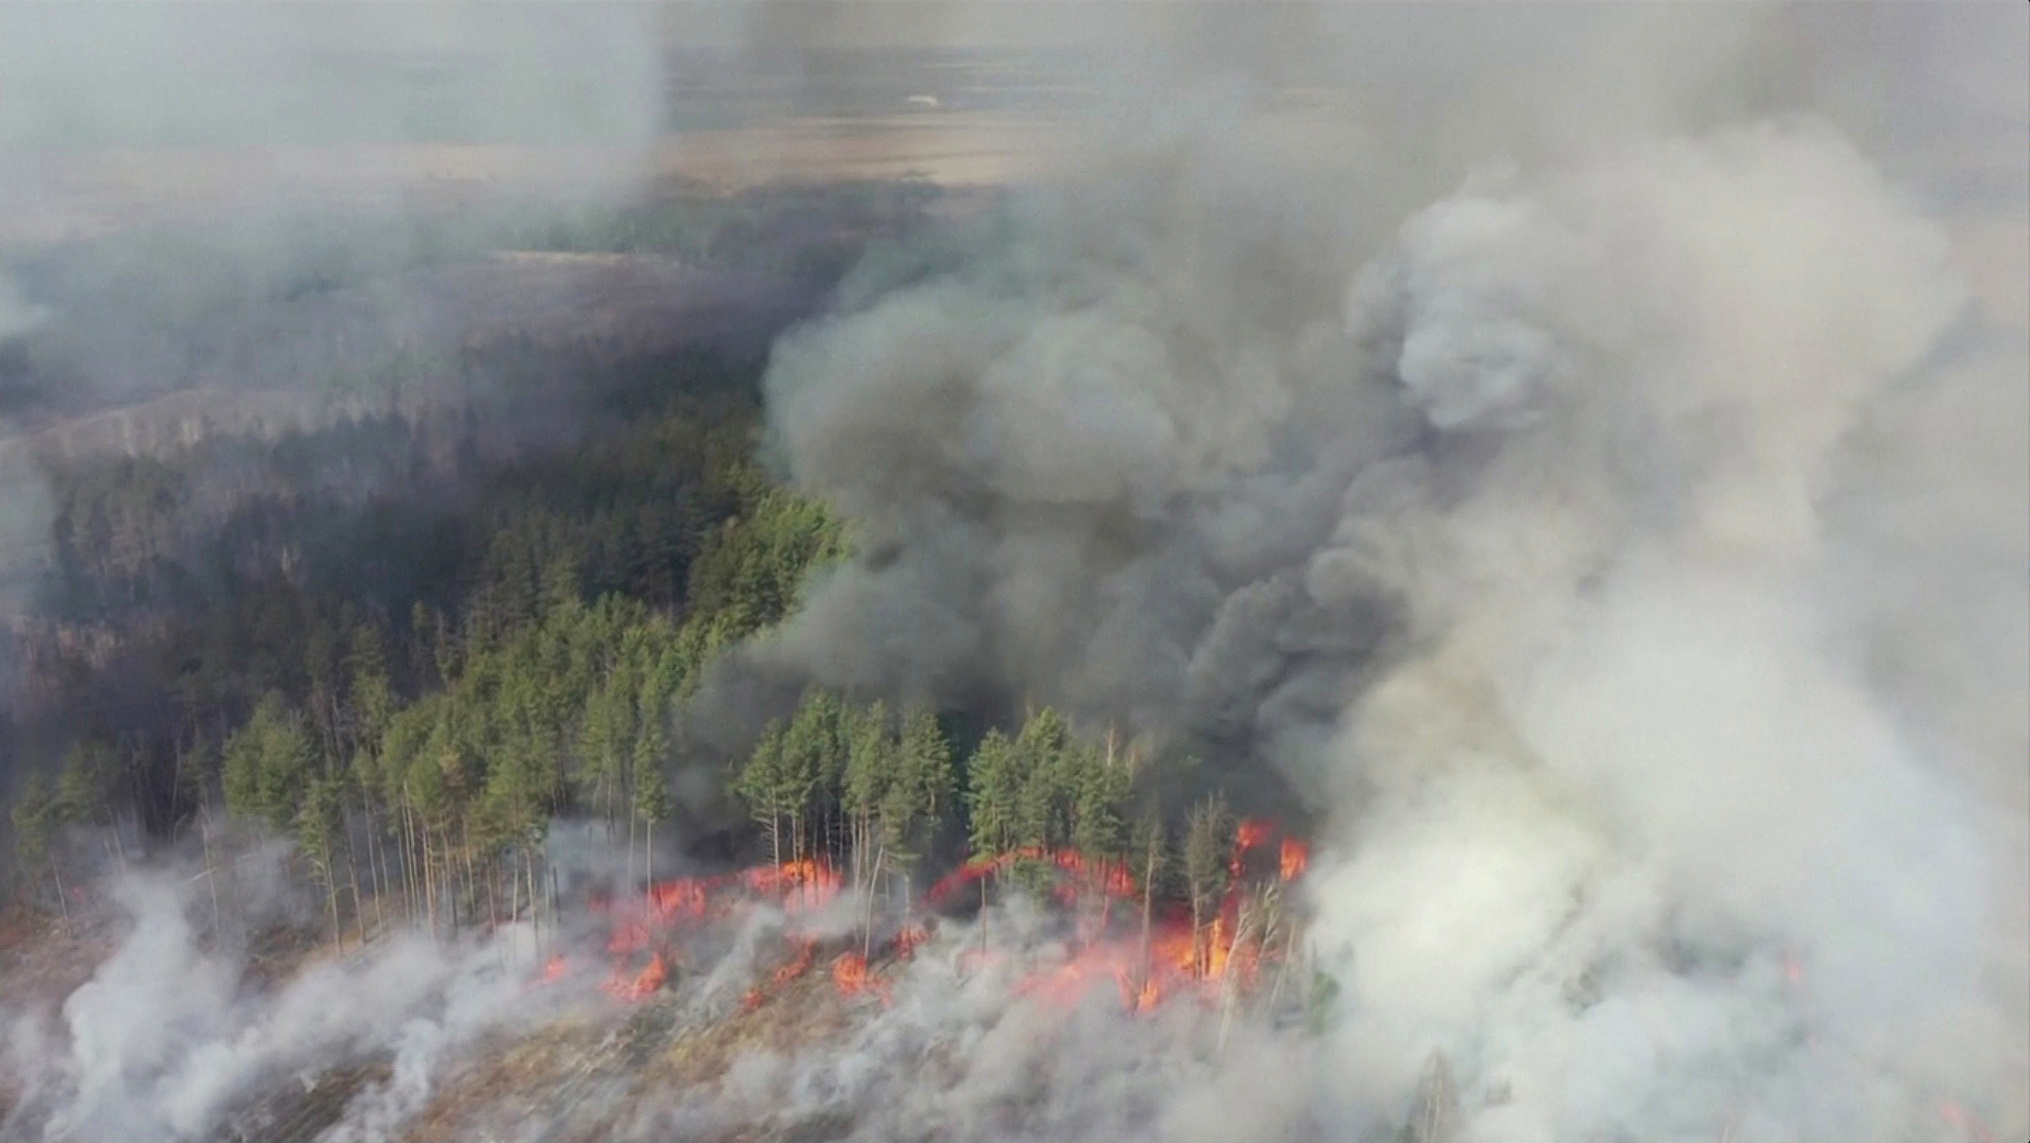 An aerial view shows a forest fire in the 30 km (19 miles) exclusion zone around the Chernobyl nuclear power plant, Ukraine, April 12, 2020.